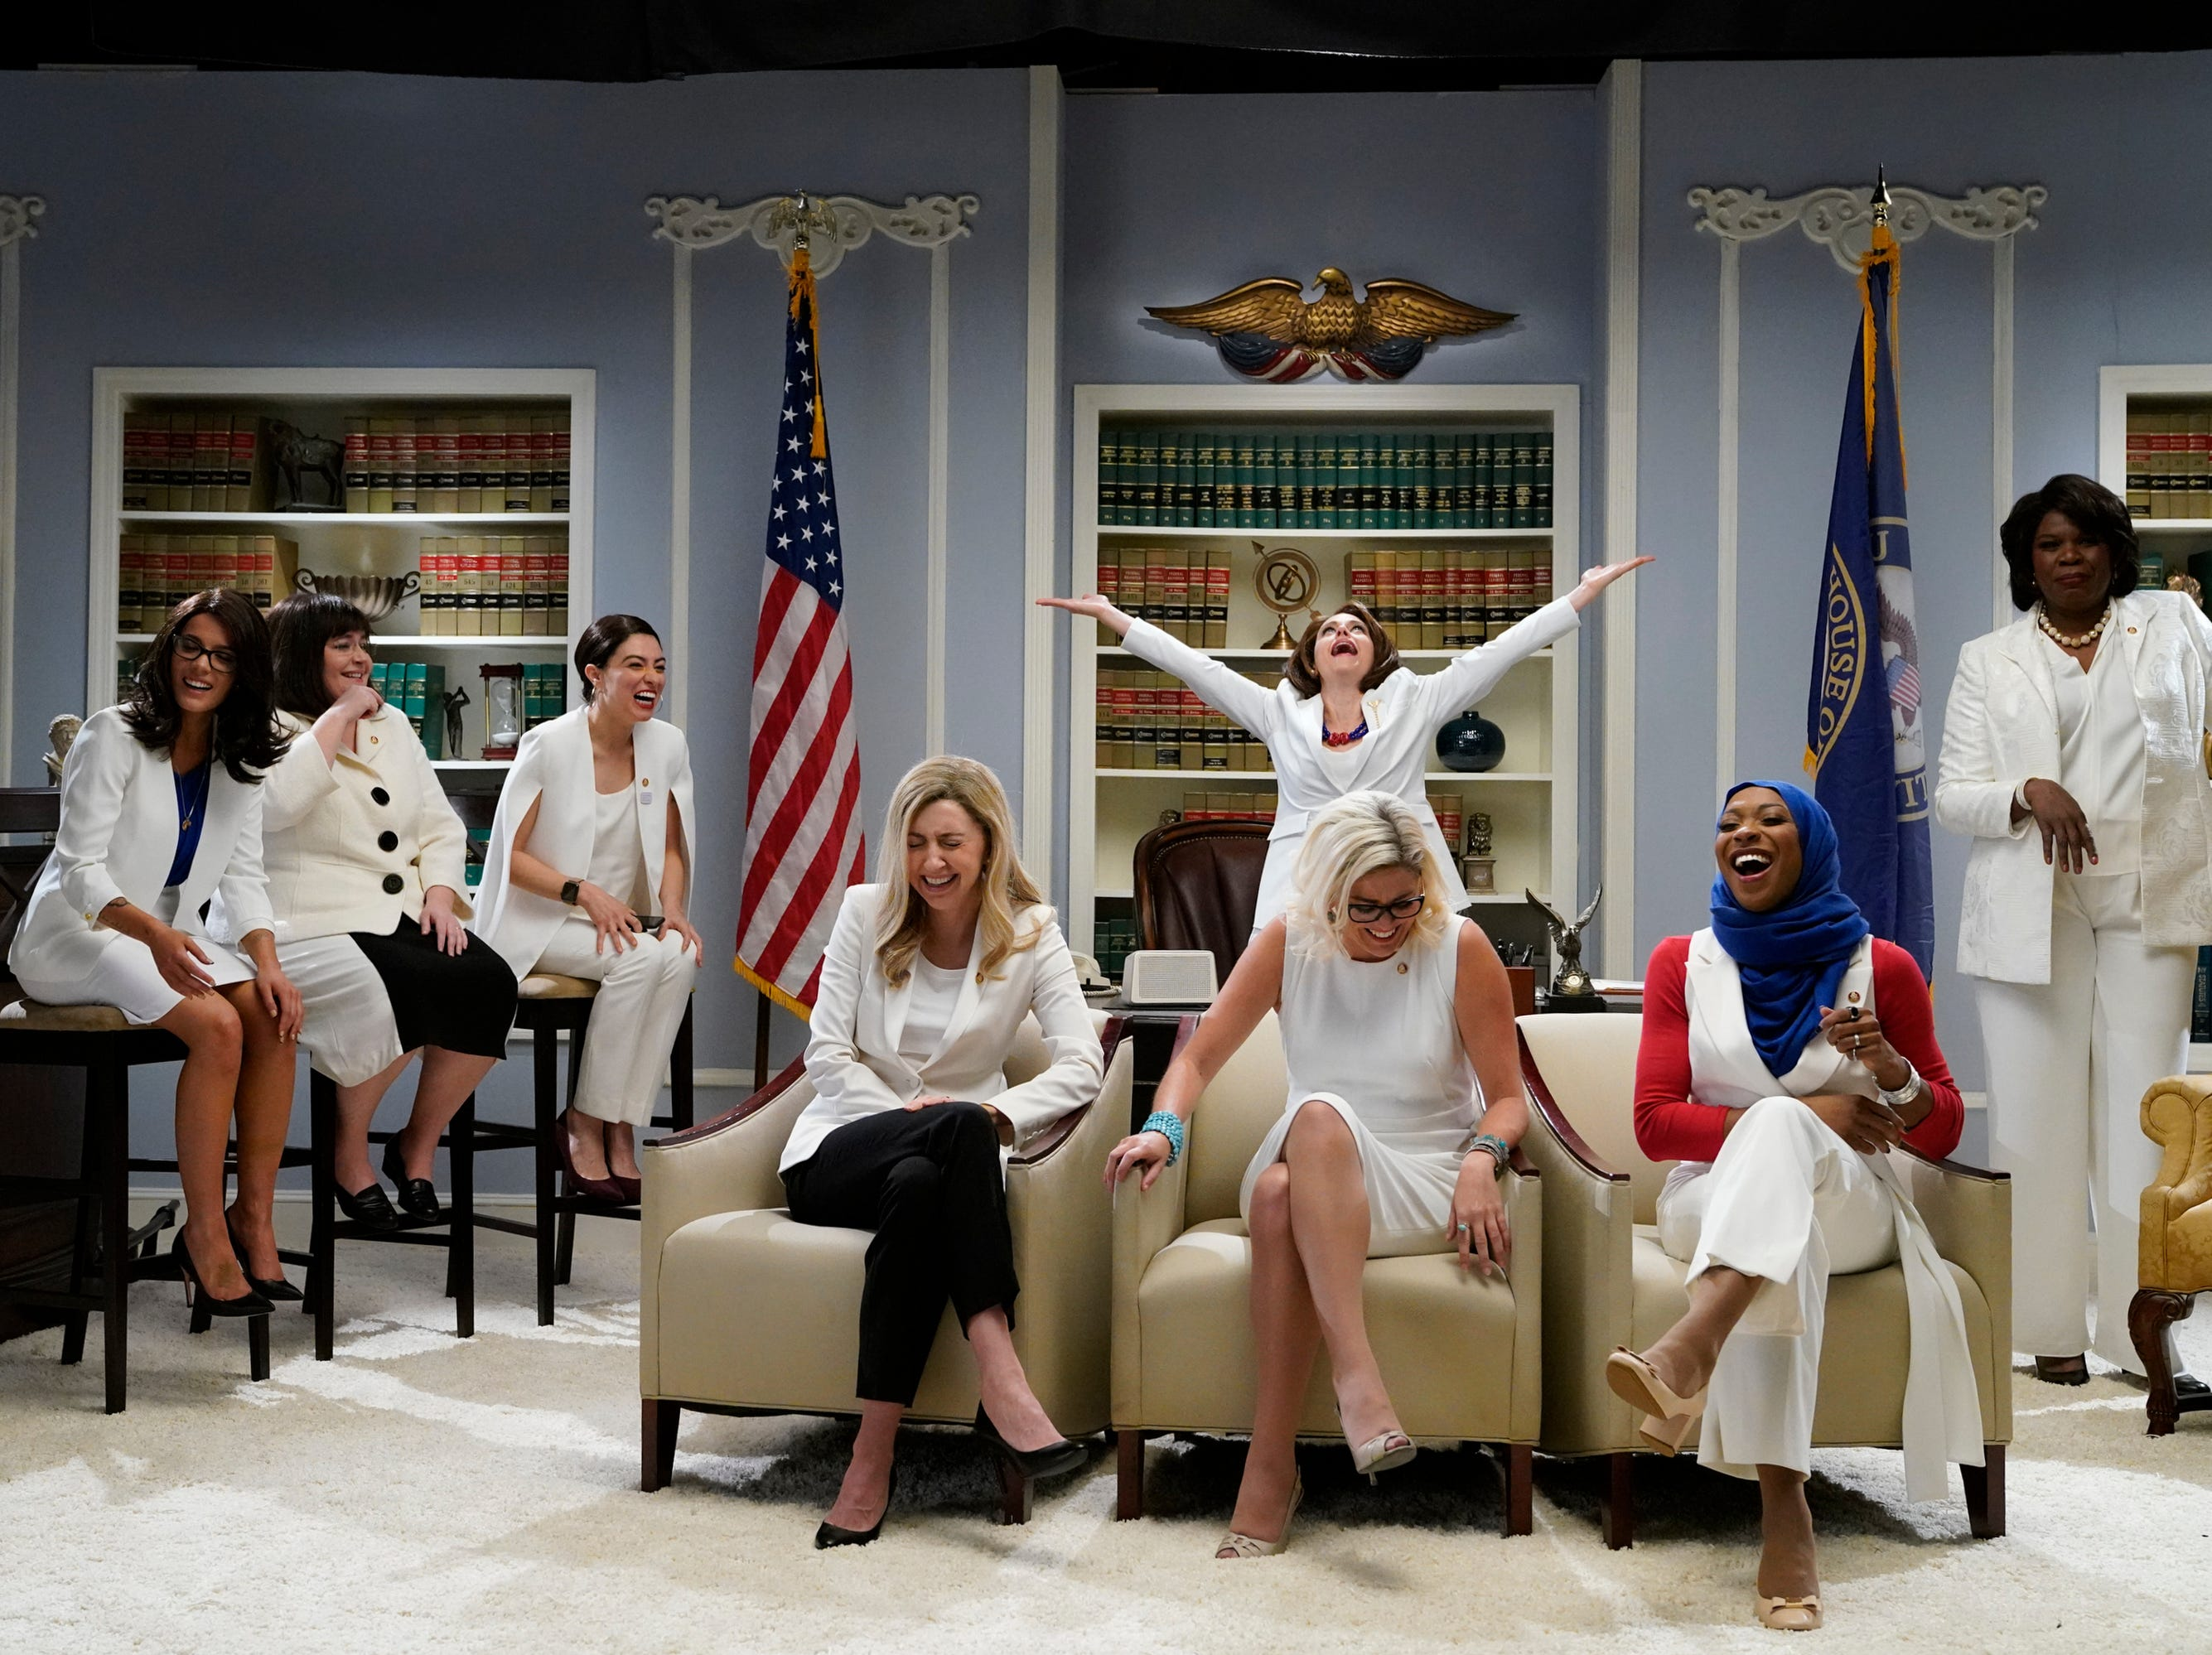 Girl power in politics was front and center with host Halsey as Rashida Tlaib, Aidy Bryant as Annie Kuster, Melissa Villasenor as Alexandria Ocasio-Cortez, Heidi Gardner as Abigail Spanberger, Kate McKinnon as Nancy Pelosi, Cecily Strong as Kyrsten Sinema, Ego Nwodim as Ilhan Omar and Leslie Jones as Maxine Waters representing women of Congress.